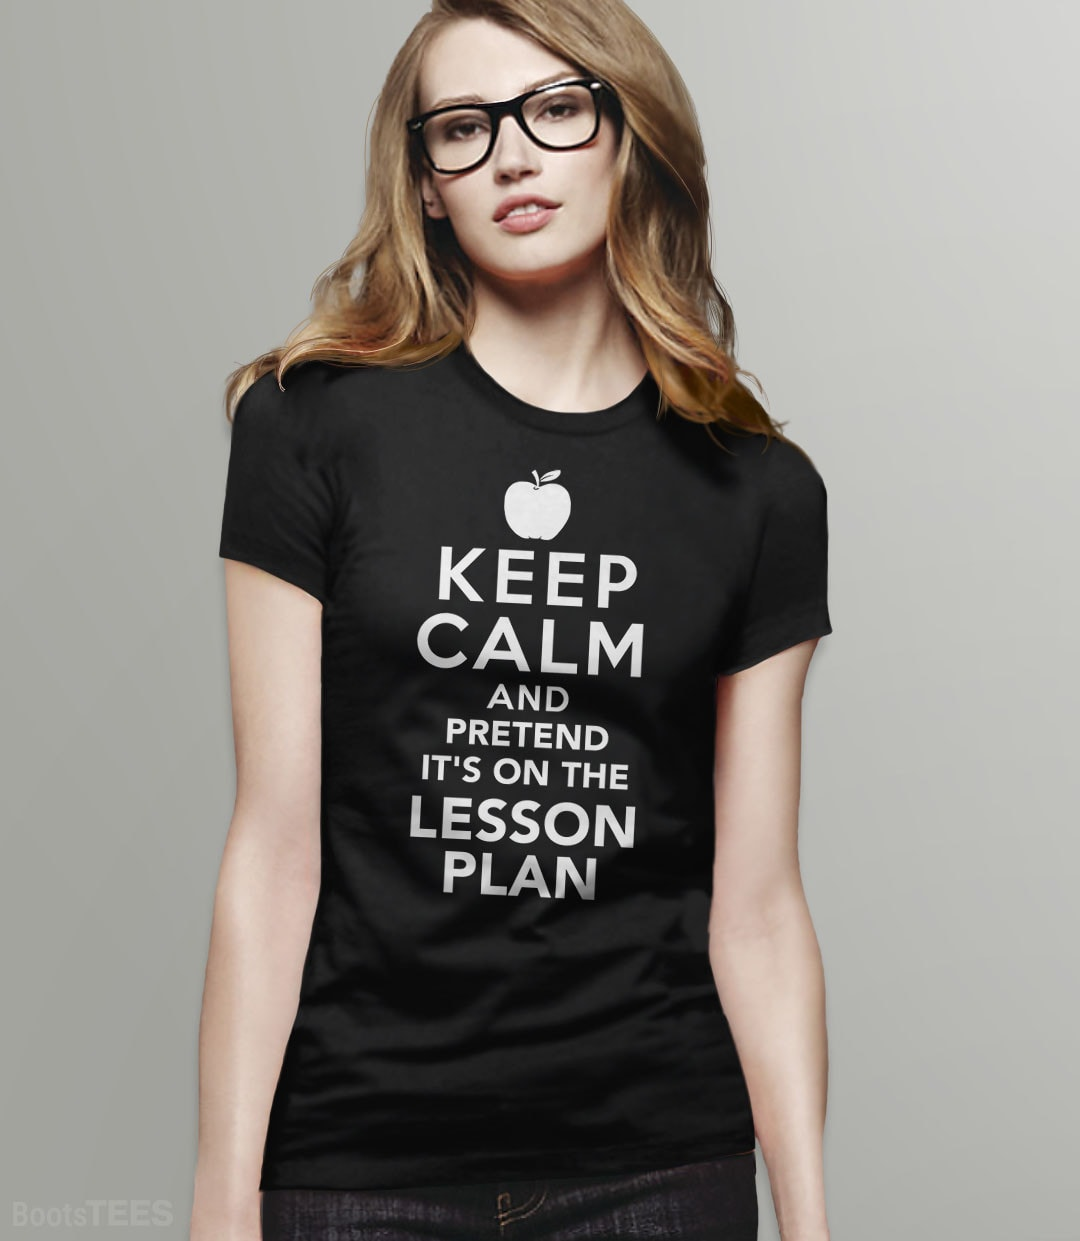 Keep Calm and Pretend It's On the Lesson Plan | Funny Teacher Gift and Teaching T-Shirt. Pictured: Black Womens Tee